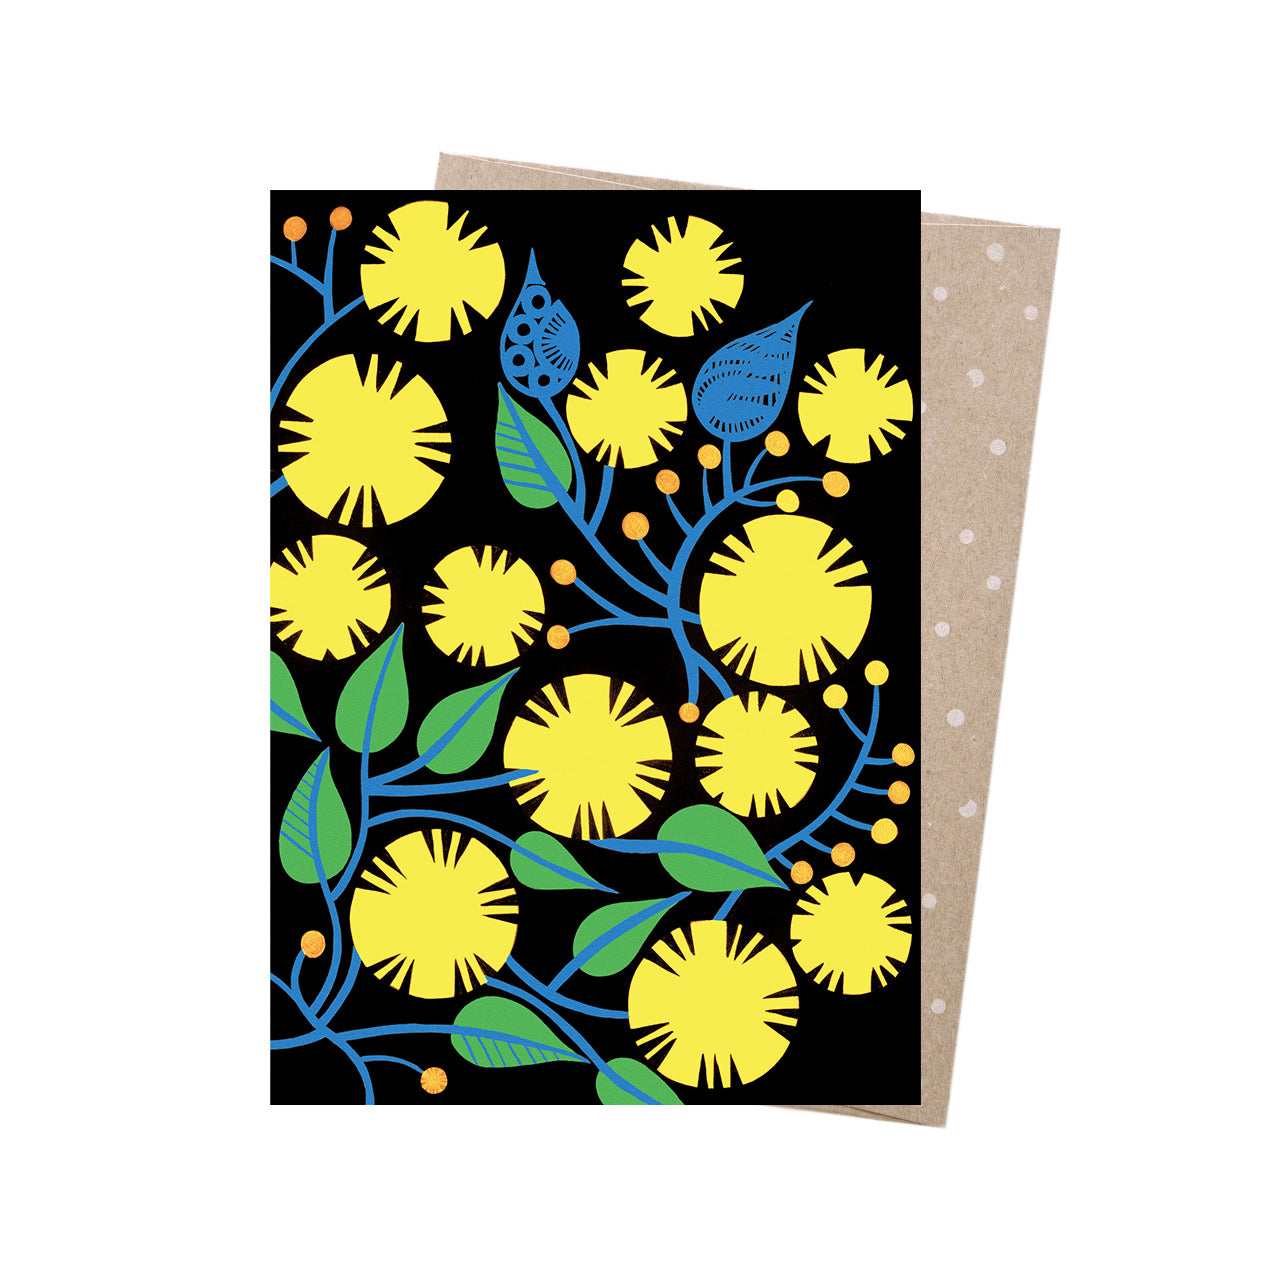 Earth Greetings Card -Golden Wattle